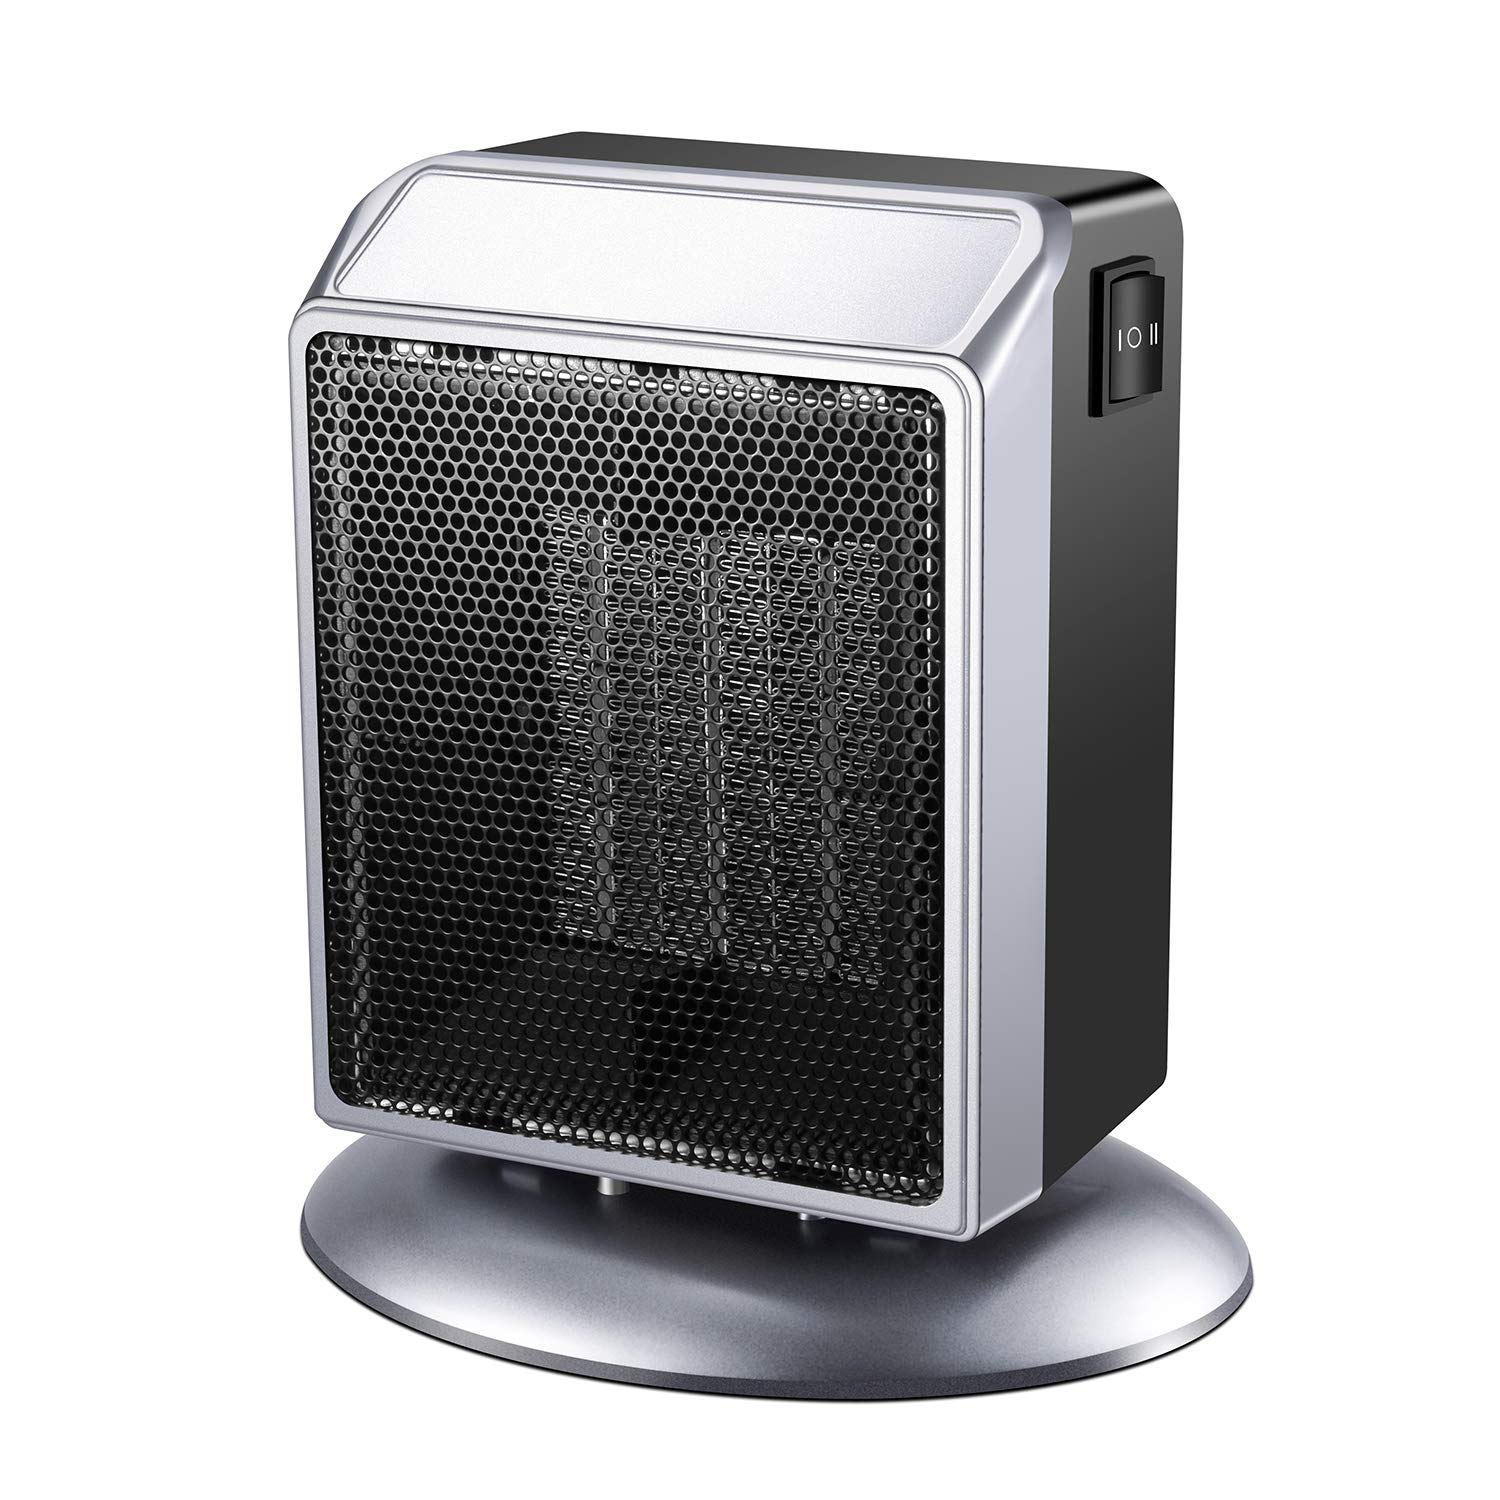 Portable Space Heater, 500W / 900W Power Setting, Perfect for Indoor Home Bedroom Office